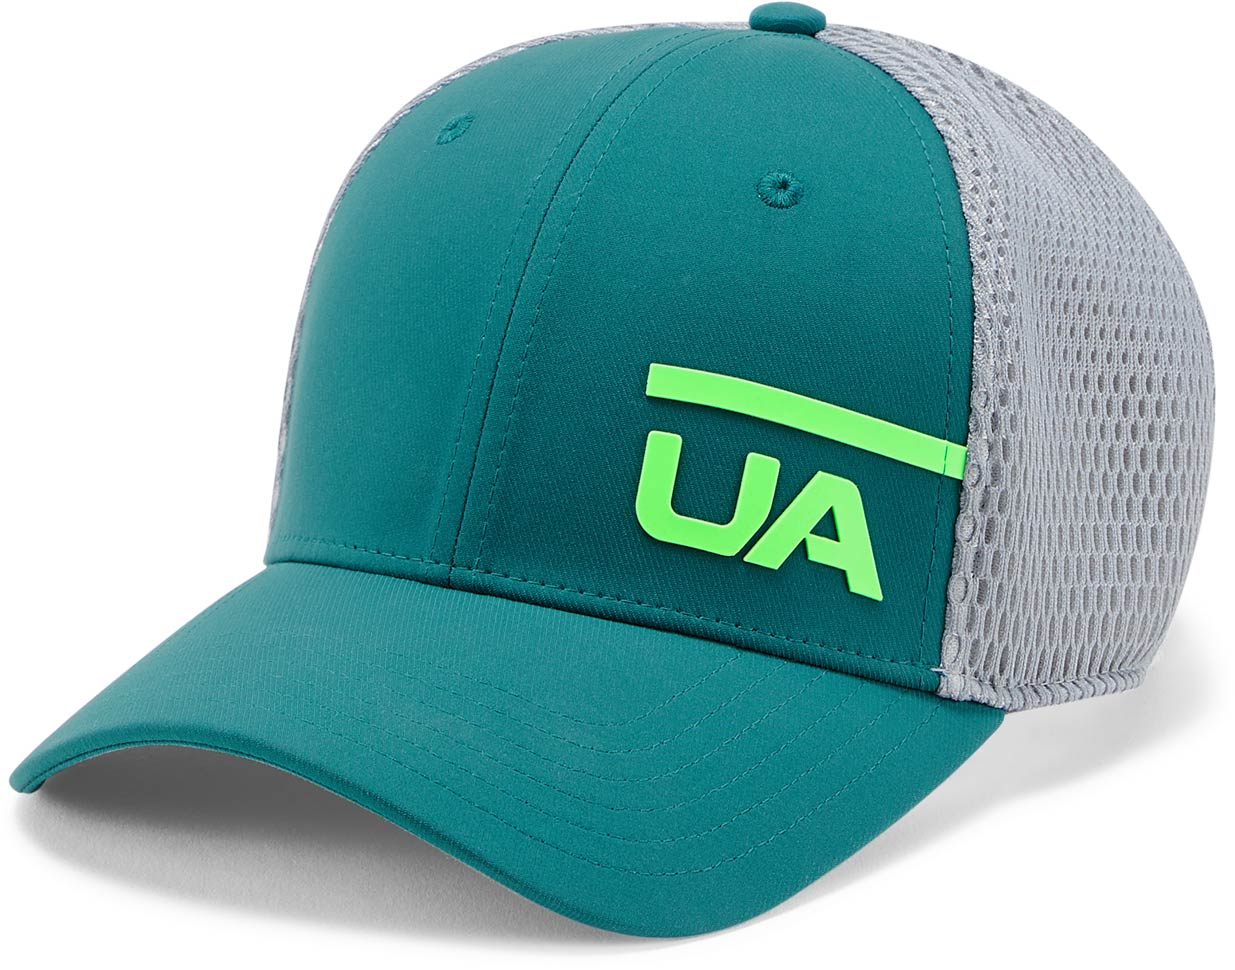 Under Armour M TRAIN SPACER MESH CAP. Pánská kšiltovka 5b3f205273